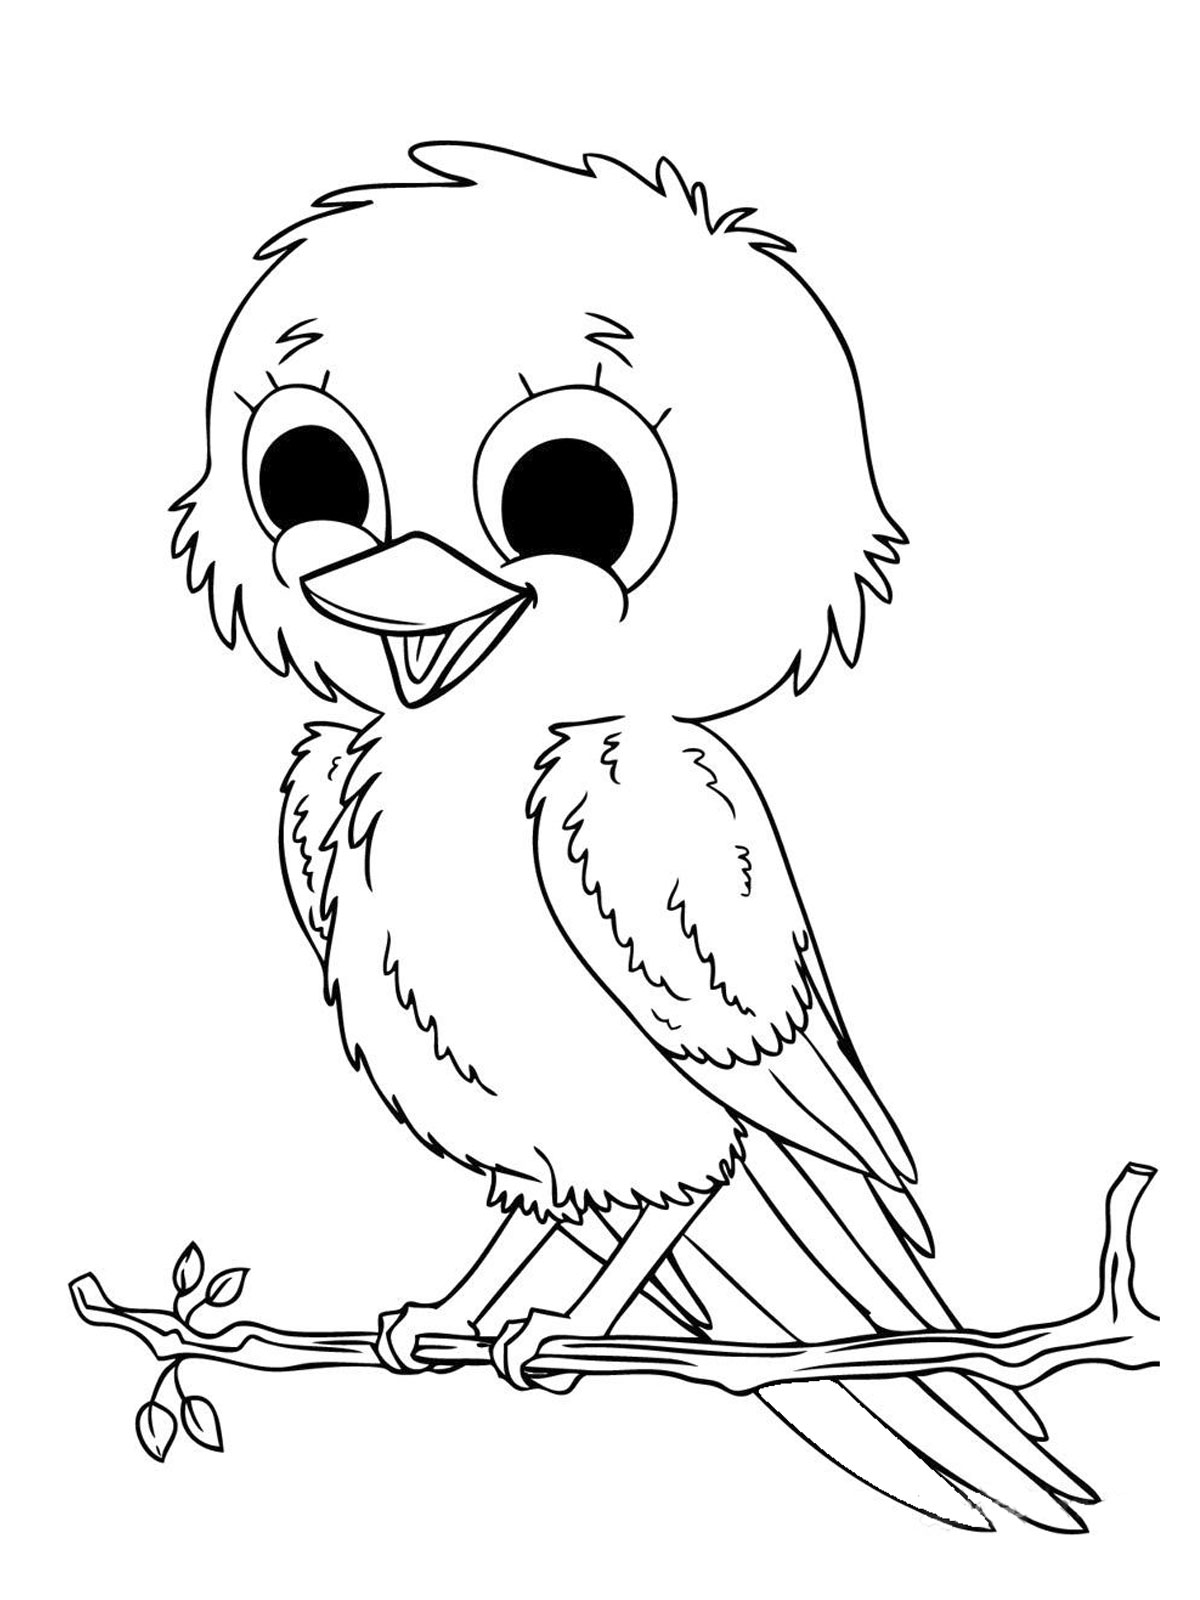 animal pictures coloring pages animal coloring pages free coloring pages printable for pages pictures coloring animal